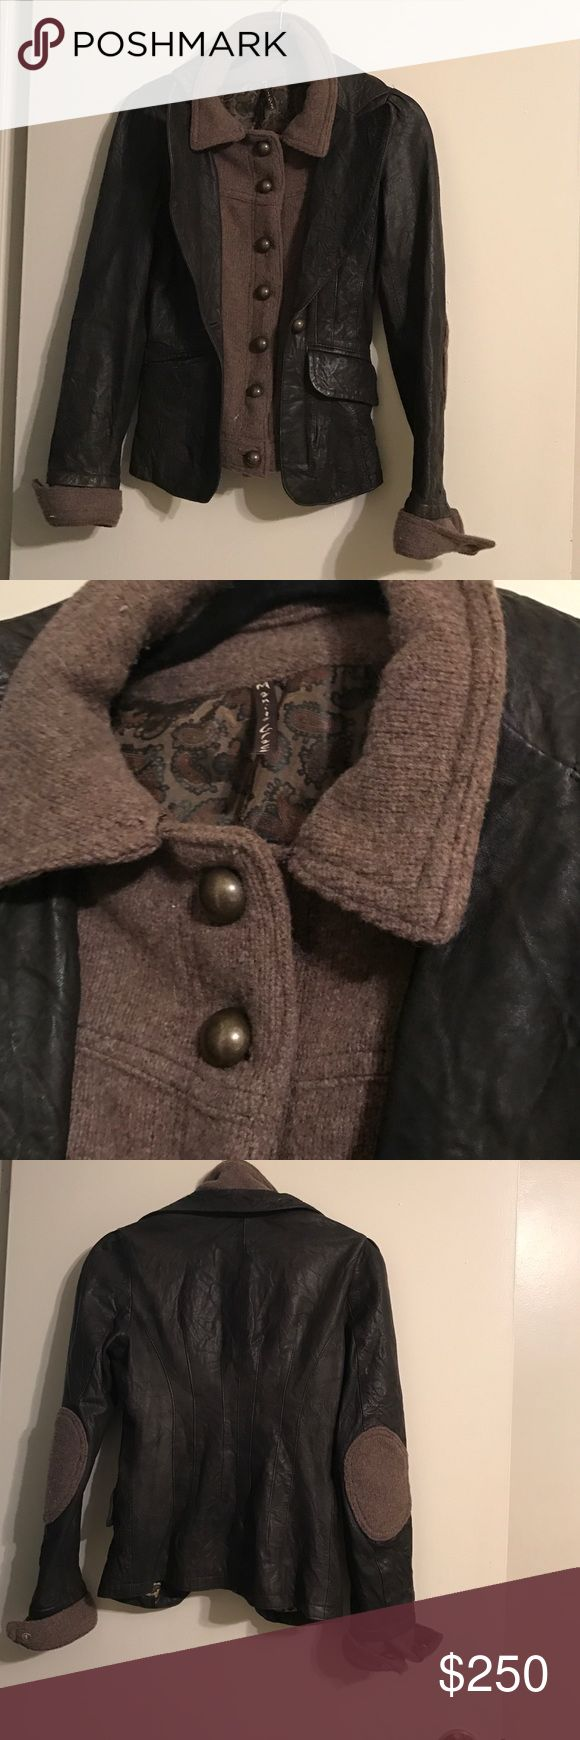 Manila Grace jacket Very pretty leather jacket with wool, elbow patches, hard to capture its beautiful on pictures! Awesome deal. Made in Italy. Like new Manila Grace Jackets & Coats